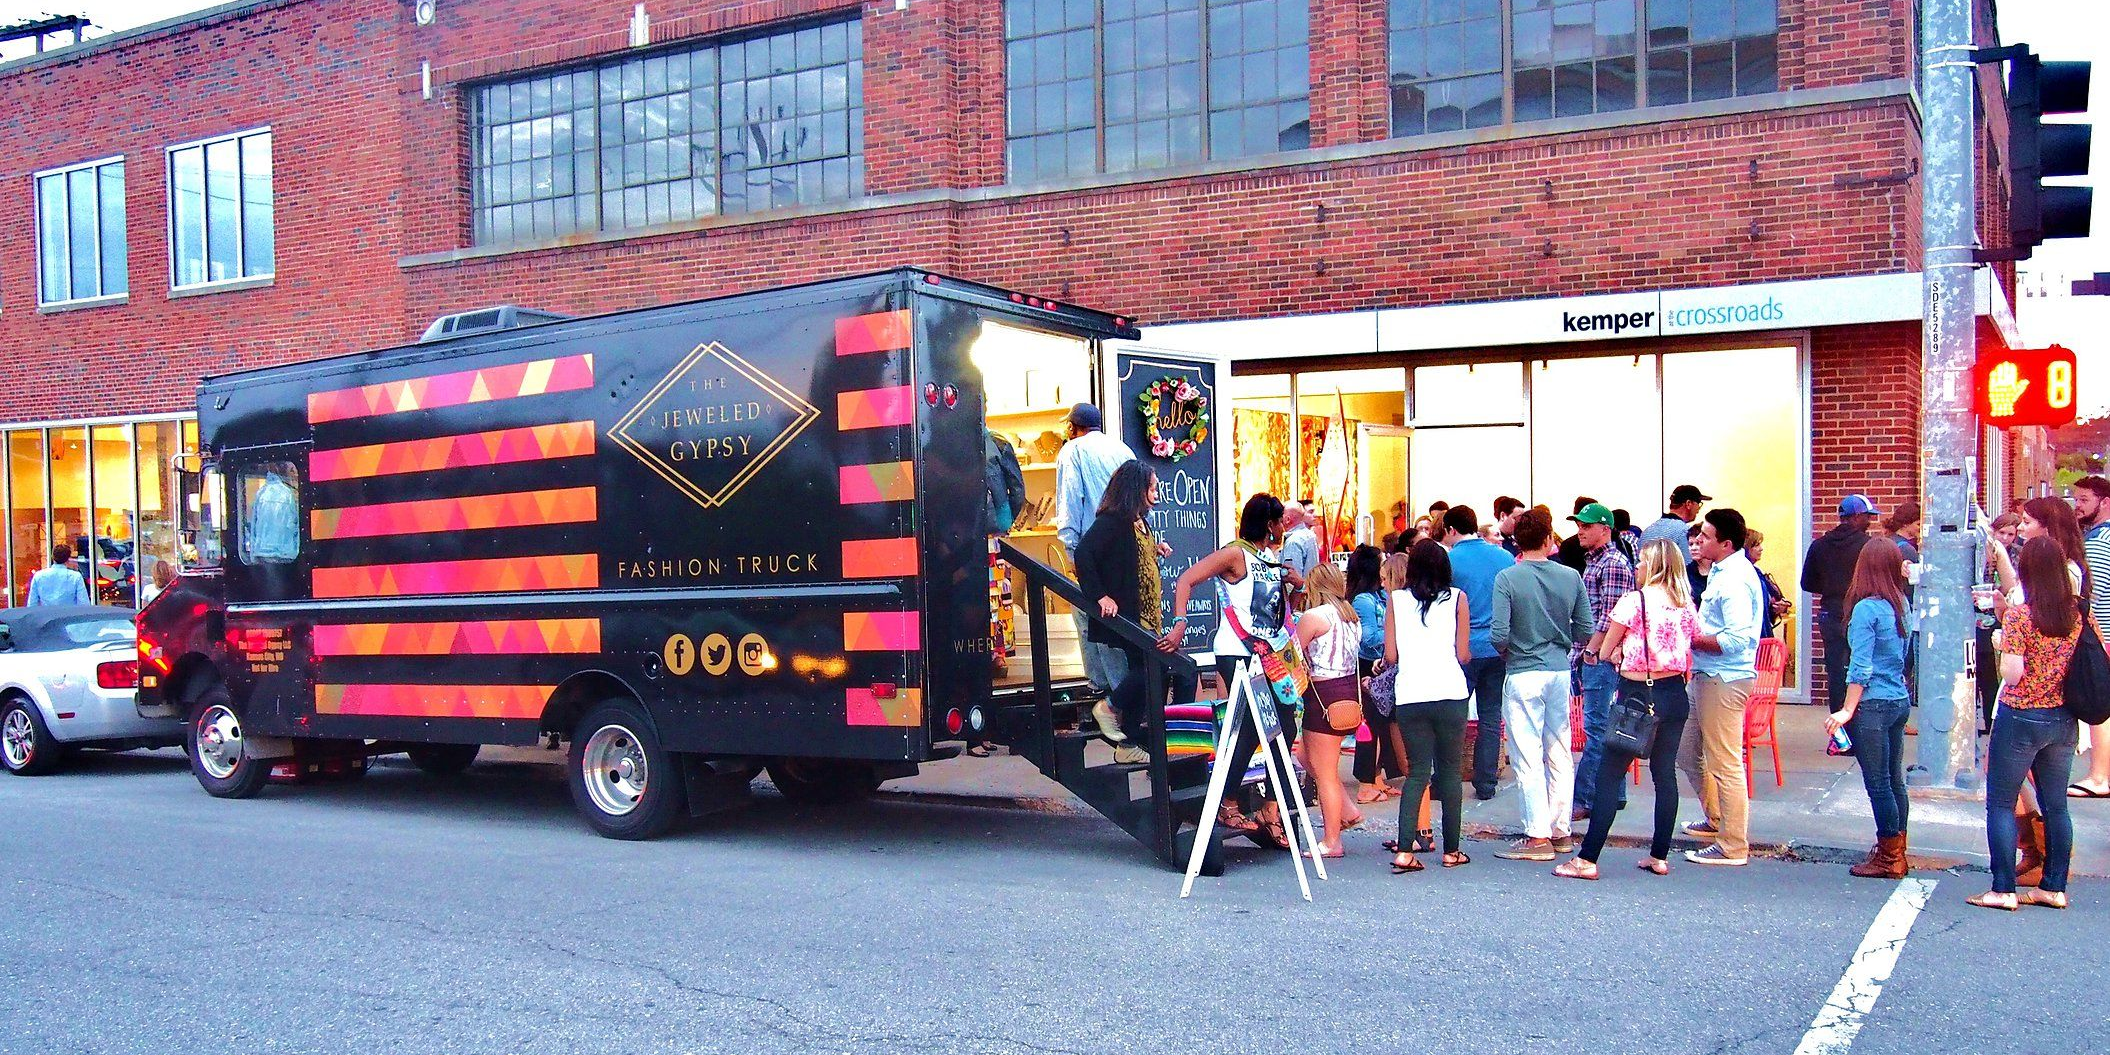 The Jeweled Gypsy fashion truck in Crossroad's Art District at First Friday's